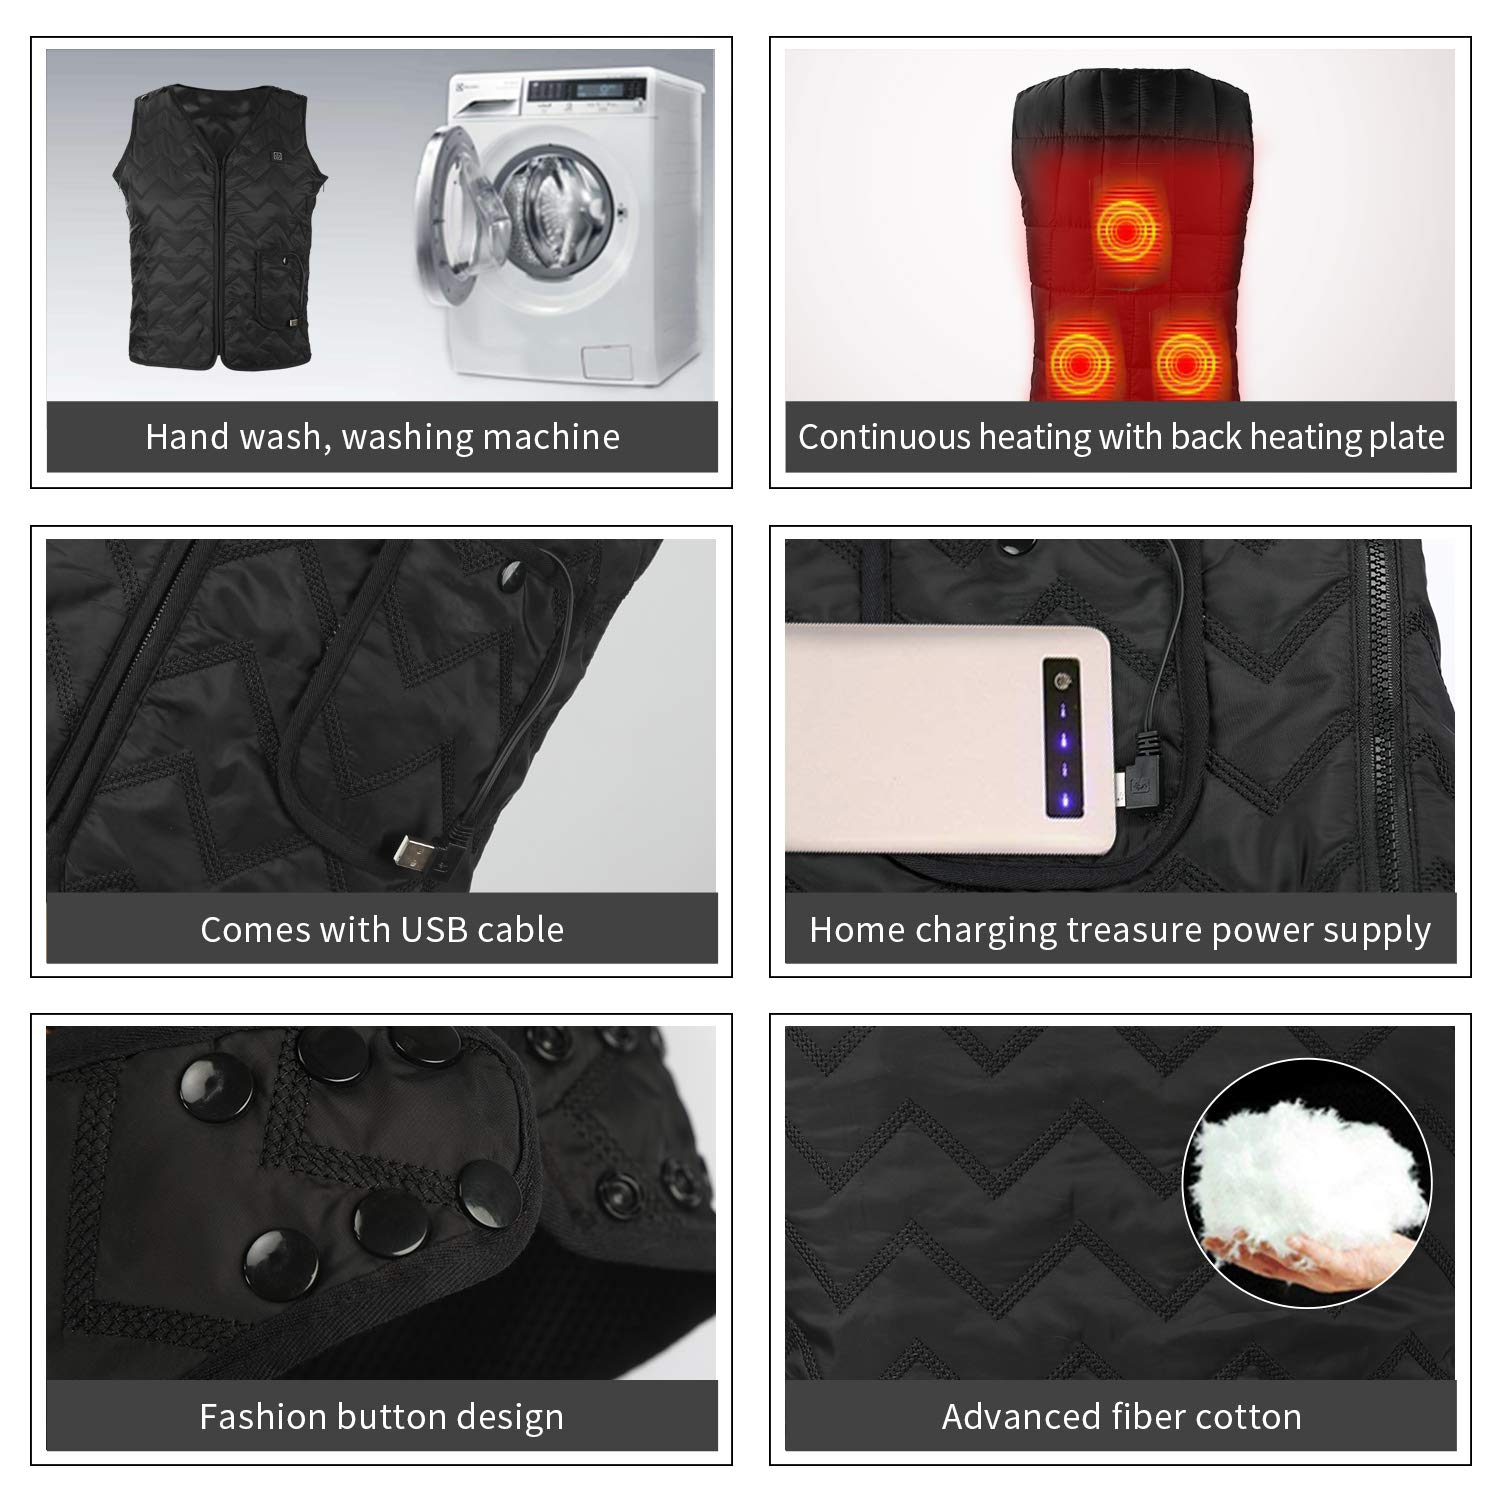 Heating Electric Vest USB Charging Heated Vest Cold-Proof Heating Clothes Washable Four Sizes Adjustment No Battery Pack Included Black by YZFDBSX (Image #6)